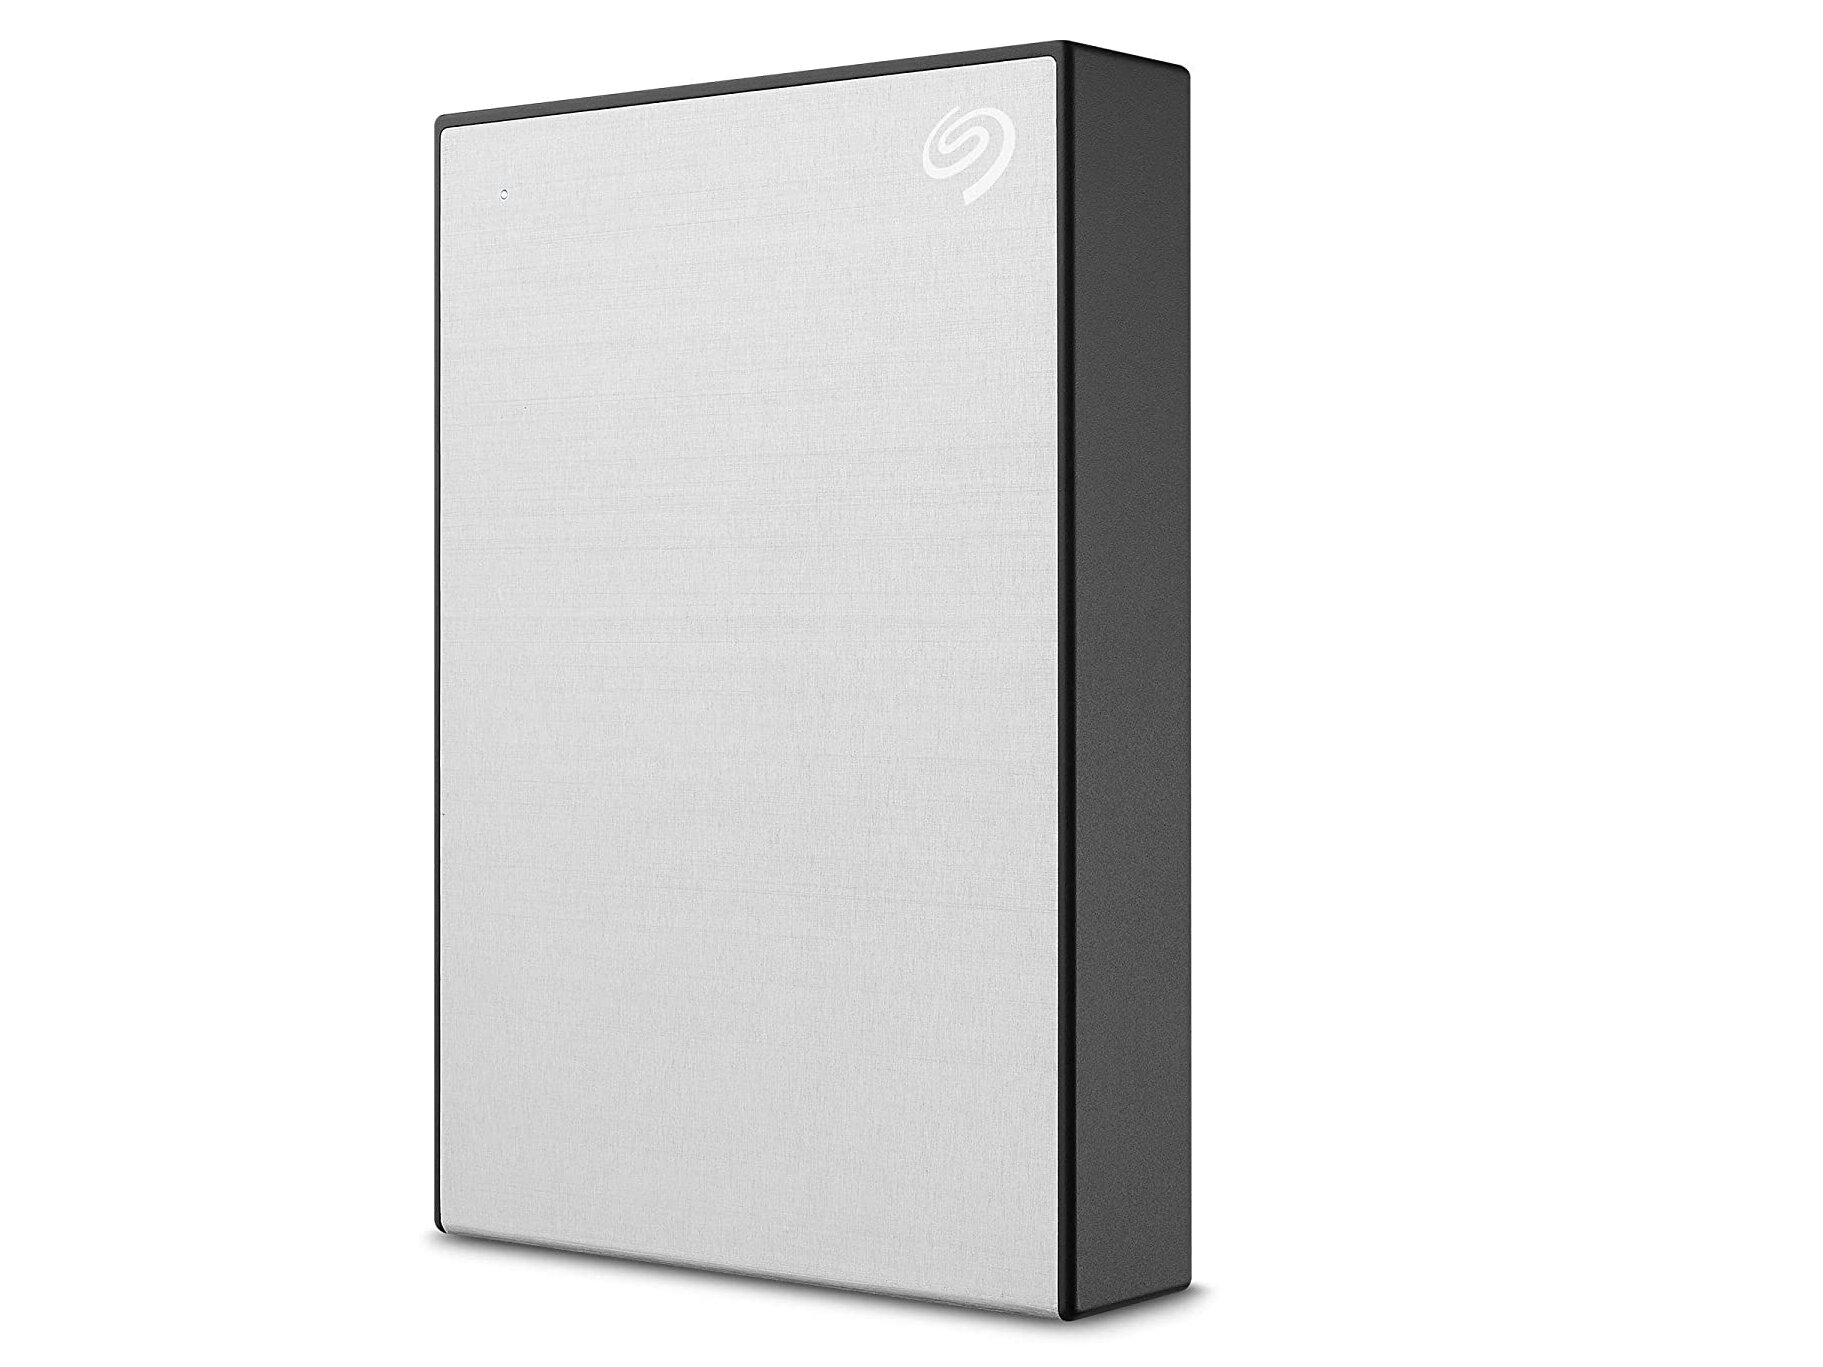 HDD Seagate One Touch 5 To en USB 3.0 : 97,16 euros